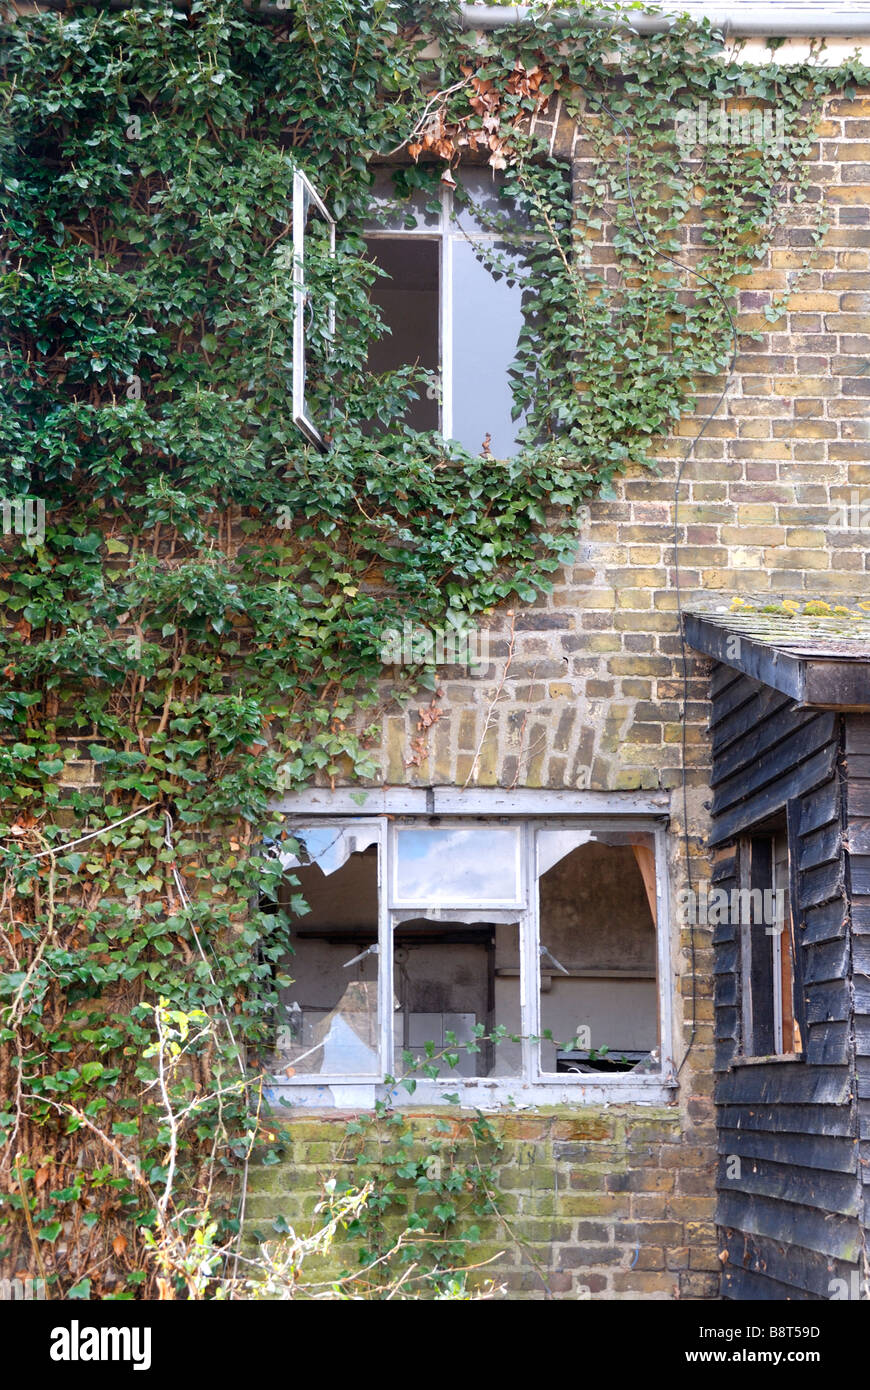 Old run down house - Stock Image